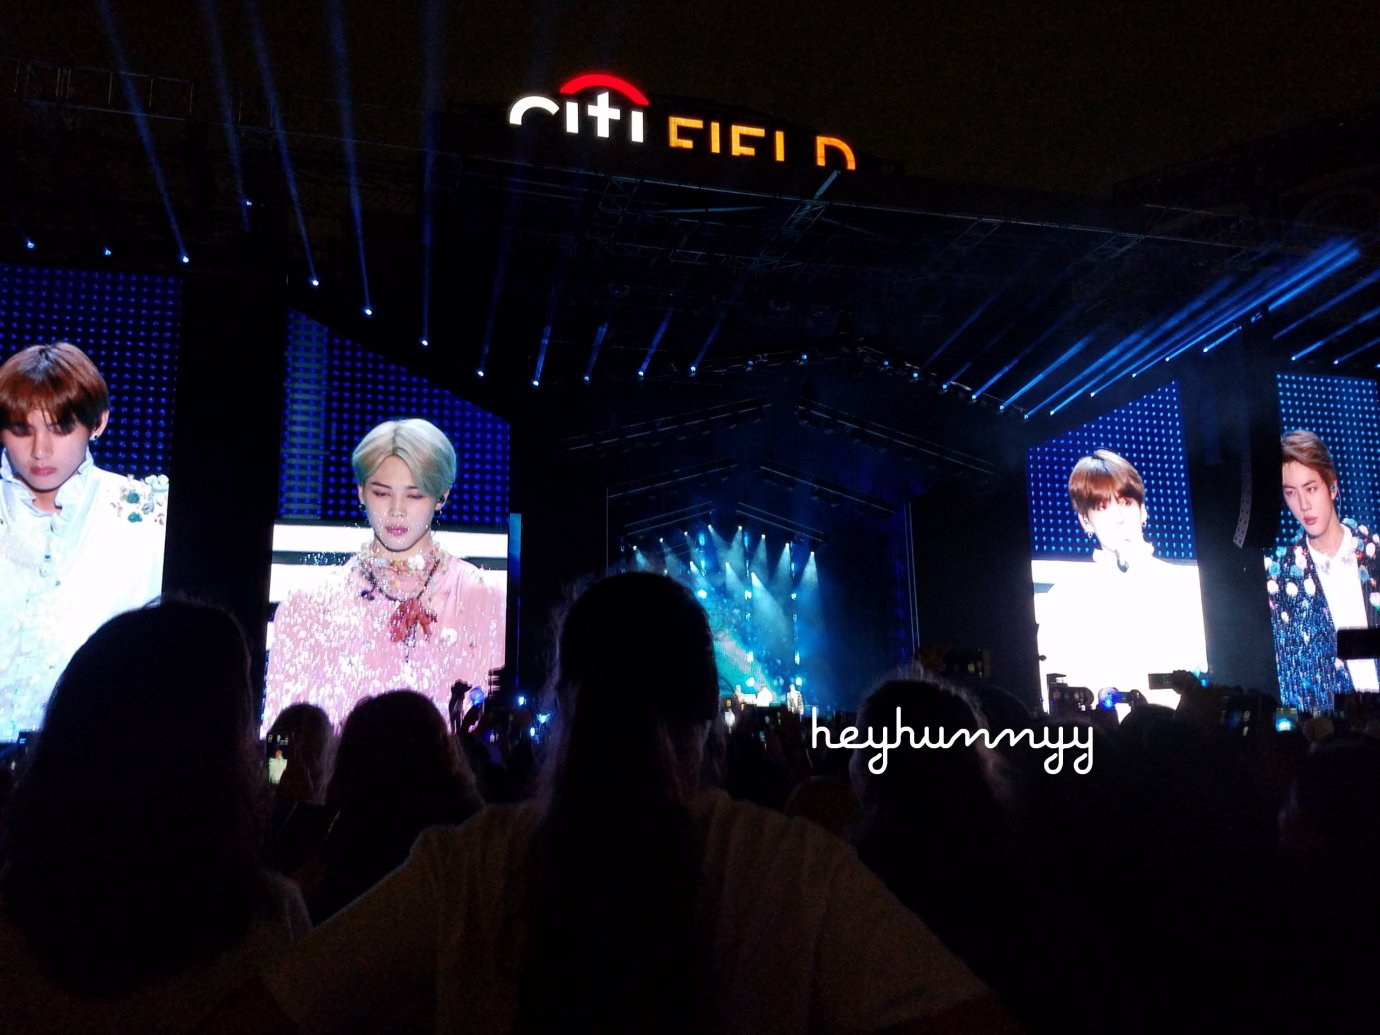 ::YOUTUBE:: I SAW BTS AND THEY WERE BEAUTIFUL. BTS Citifield NYC 2018 Love Yourself Concert 181006 Hunnyy